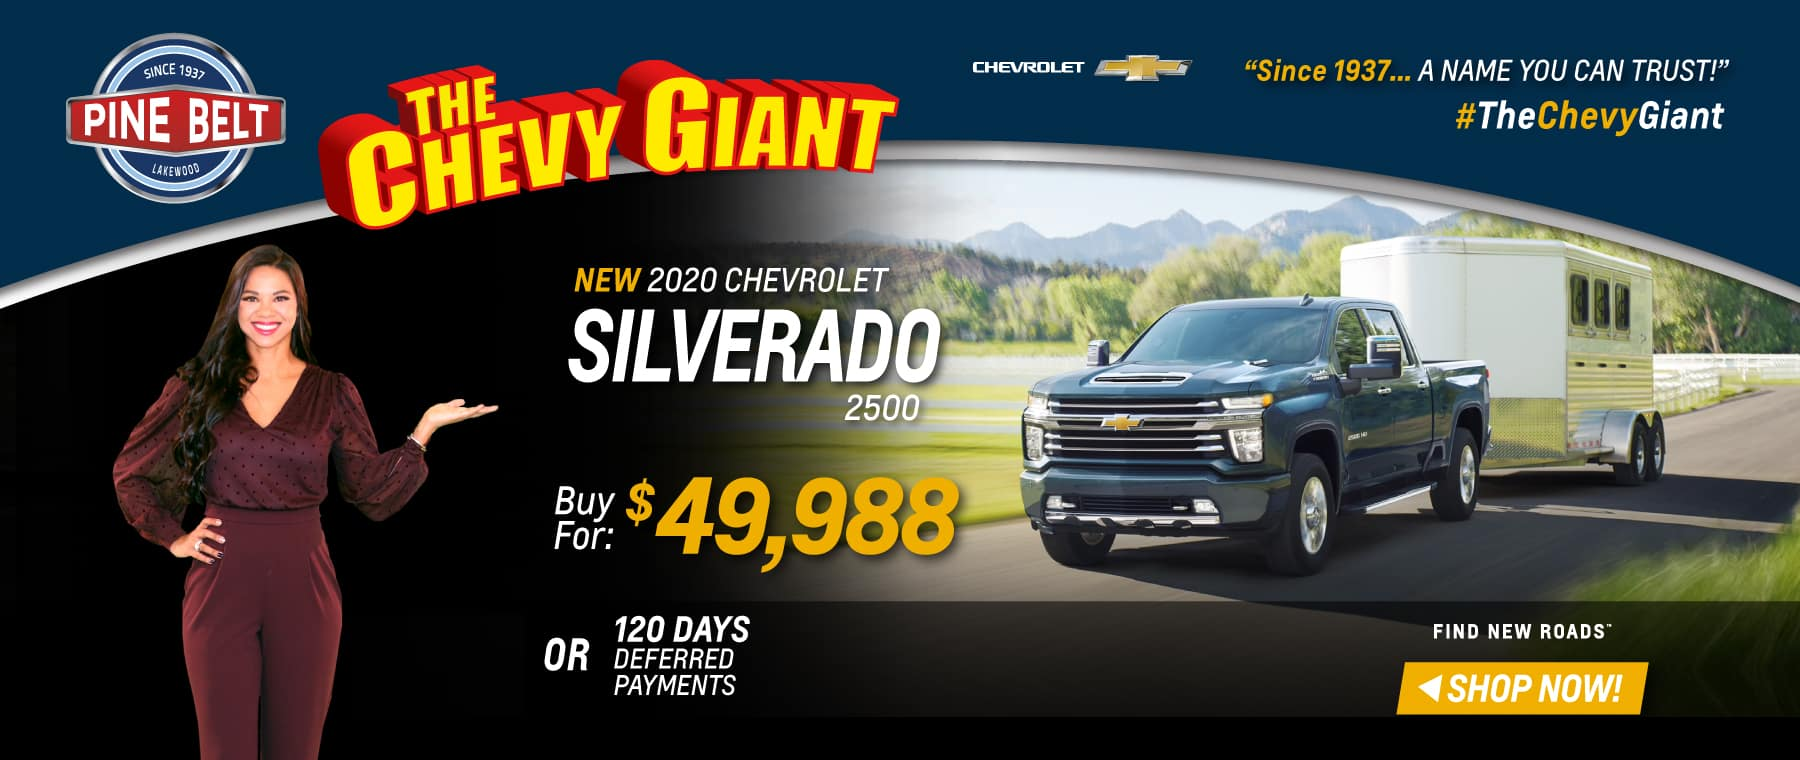 2020 Chevy Traverse Lease, Purchase or Finance Deals